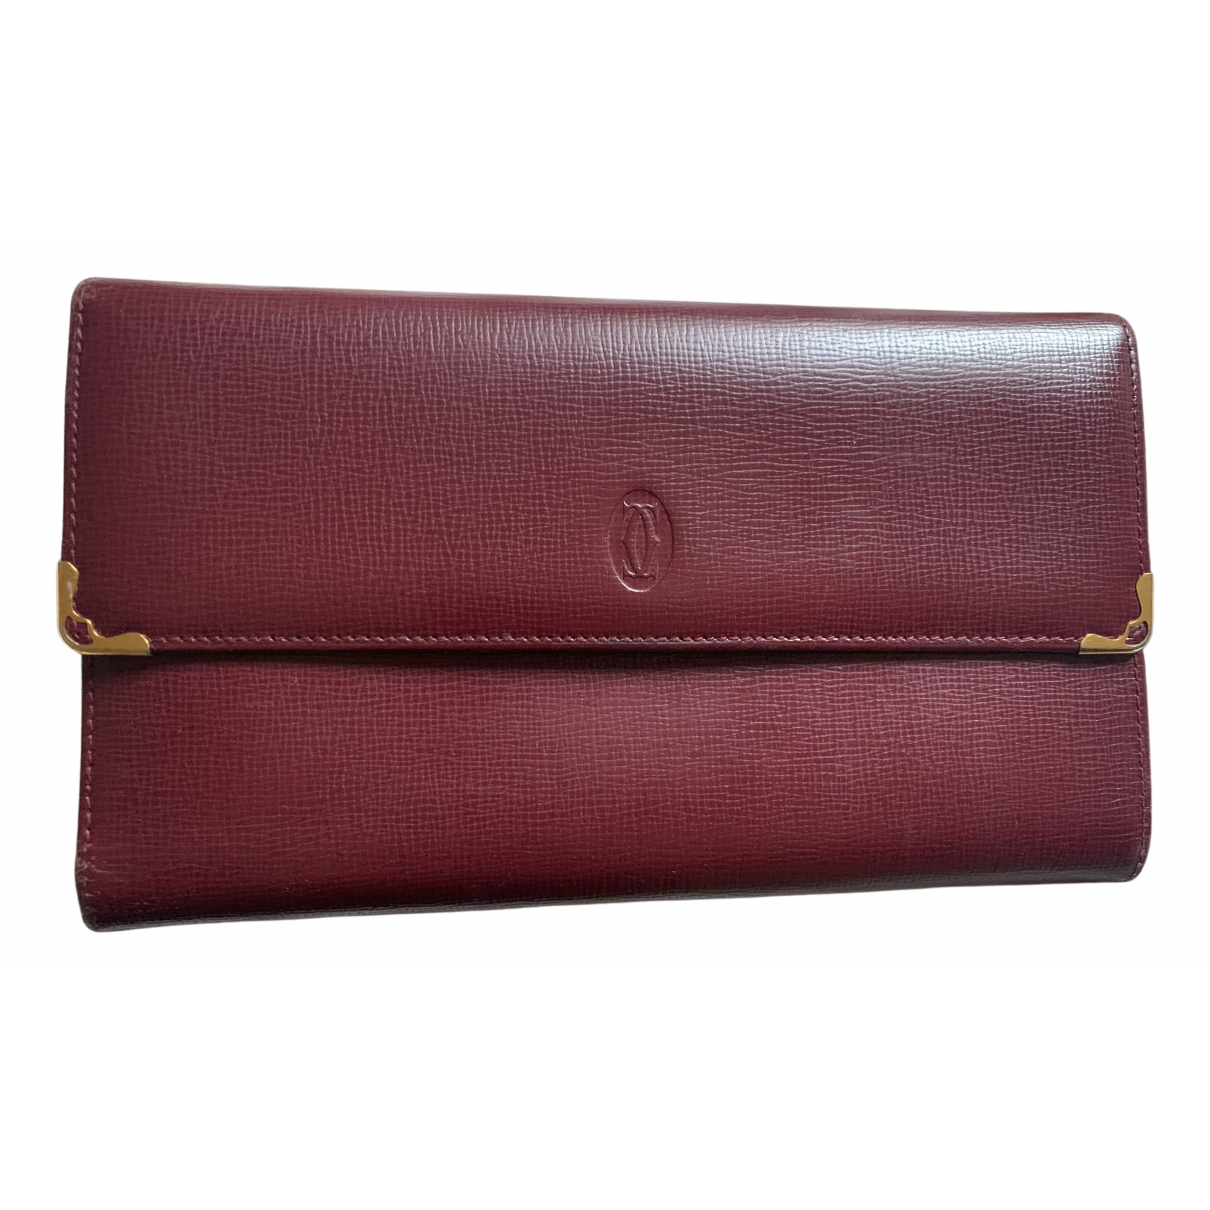 Cartier N Burgundy Leather wallet for Women N